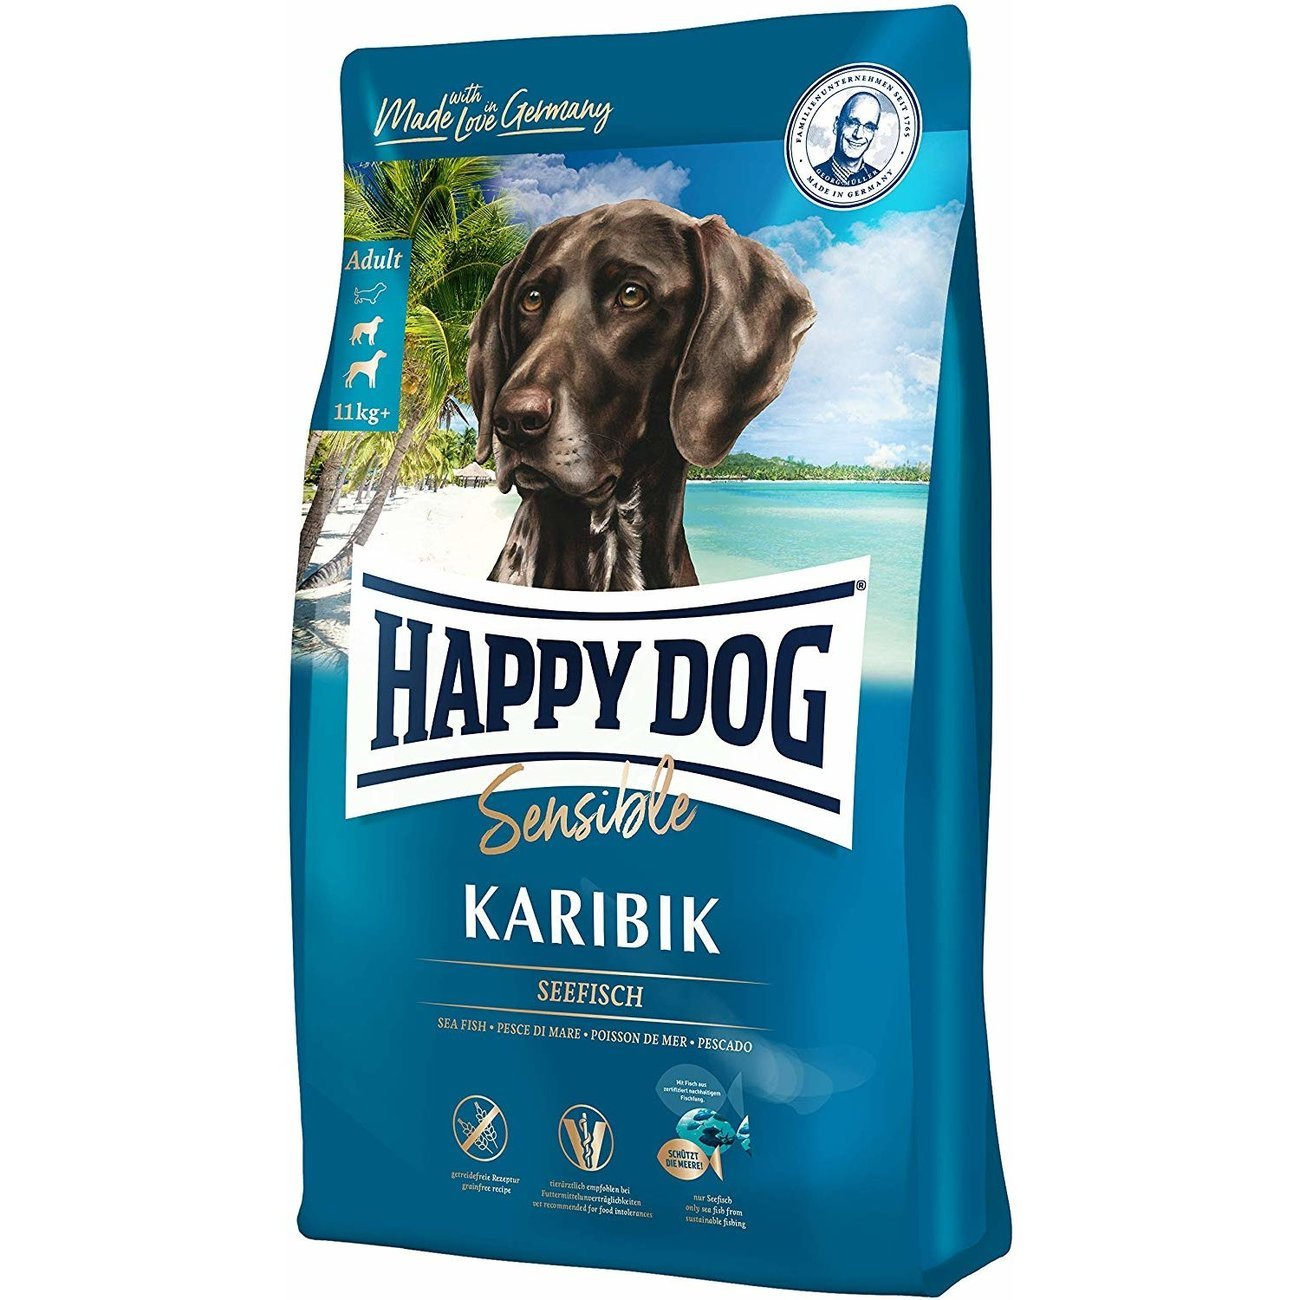 Happy Dog Supreme Sensible Karibik, 4 kg